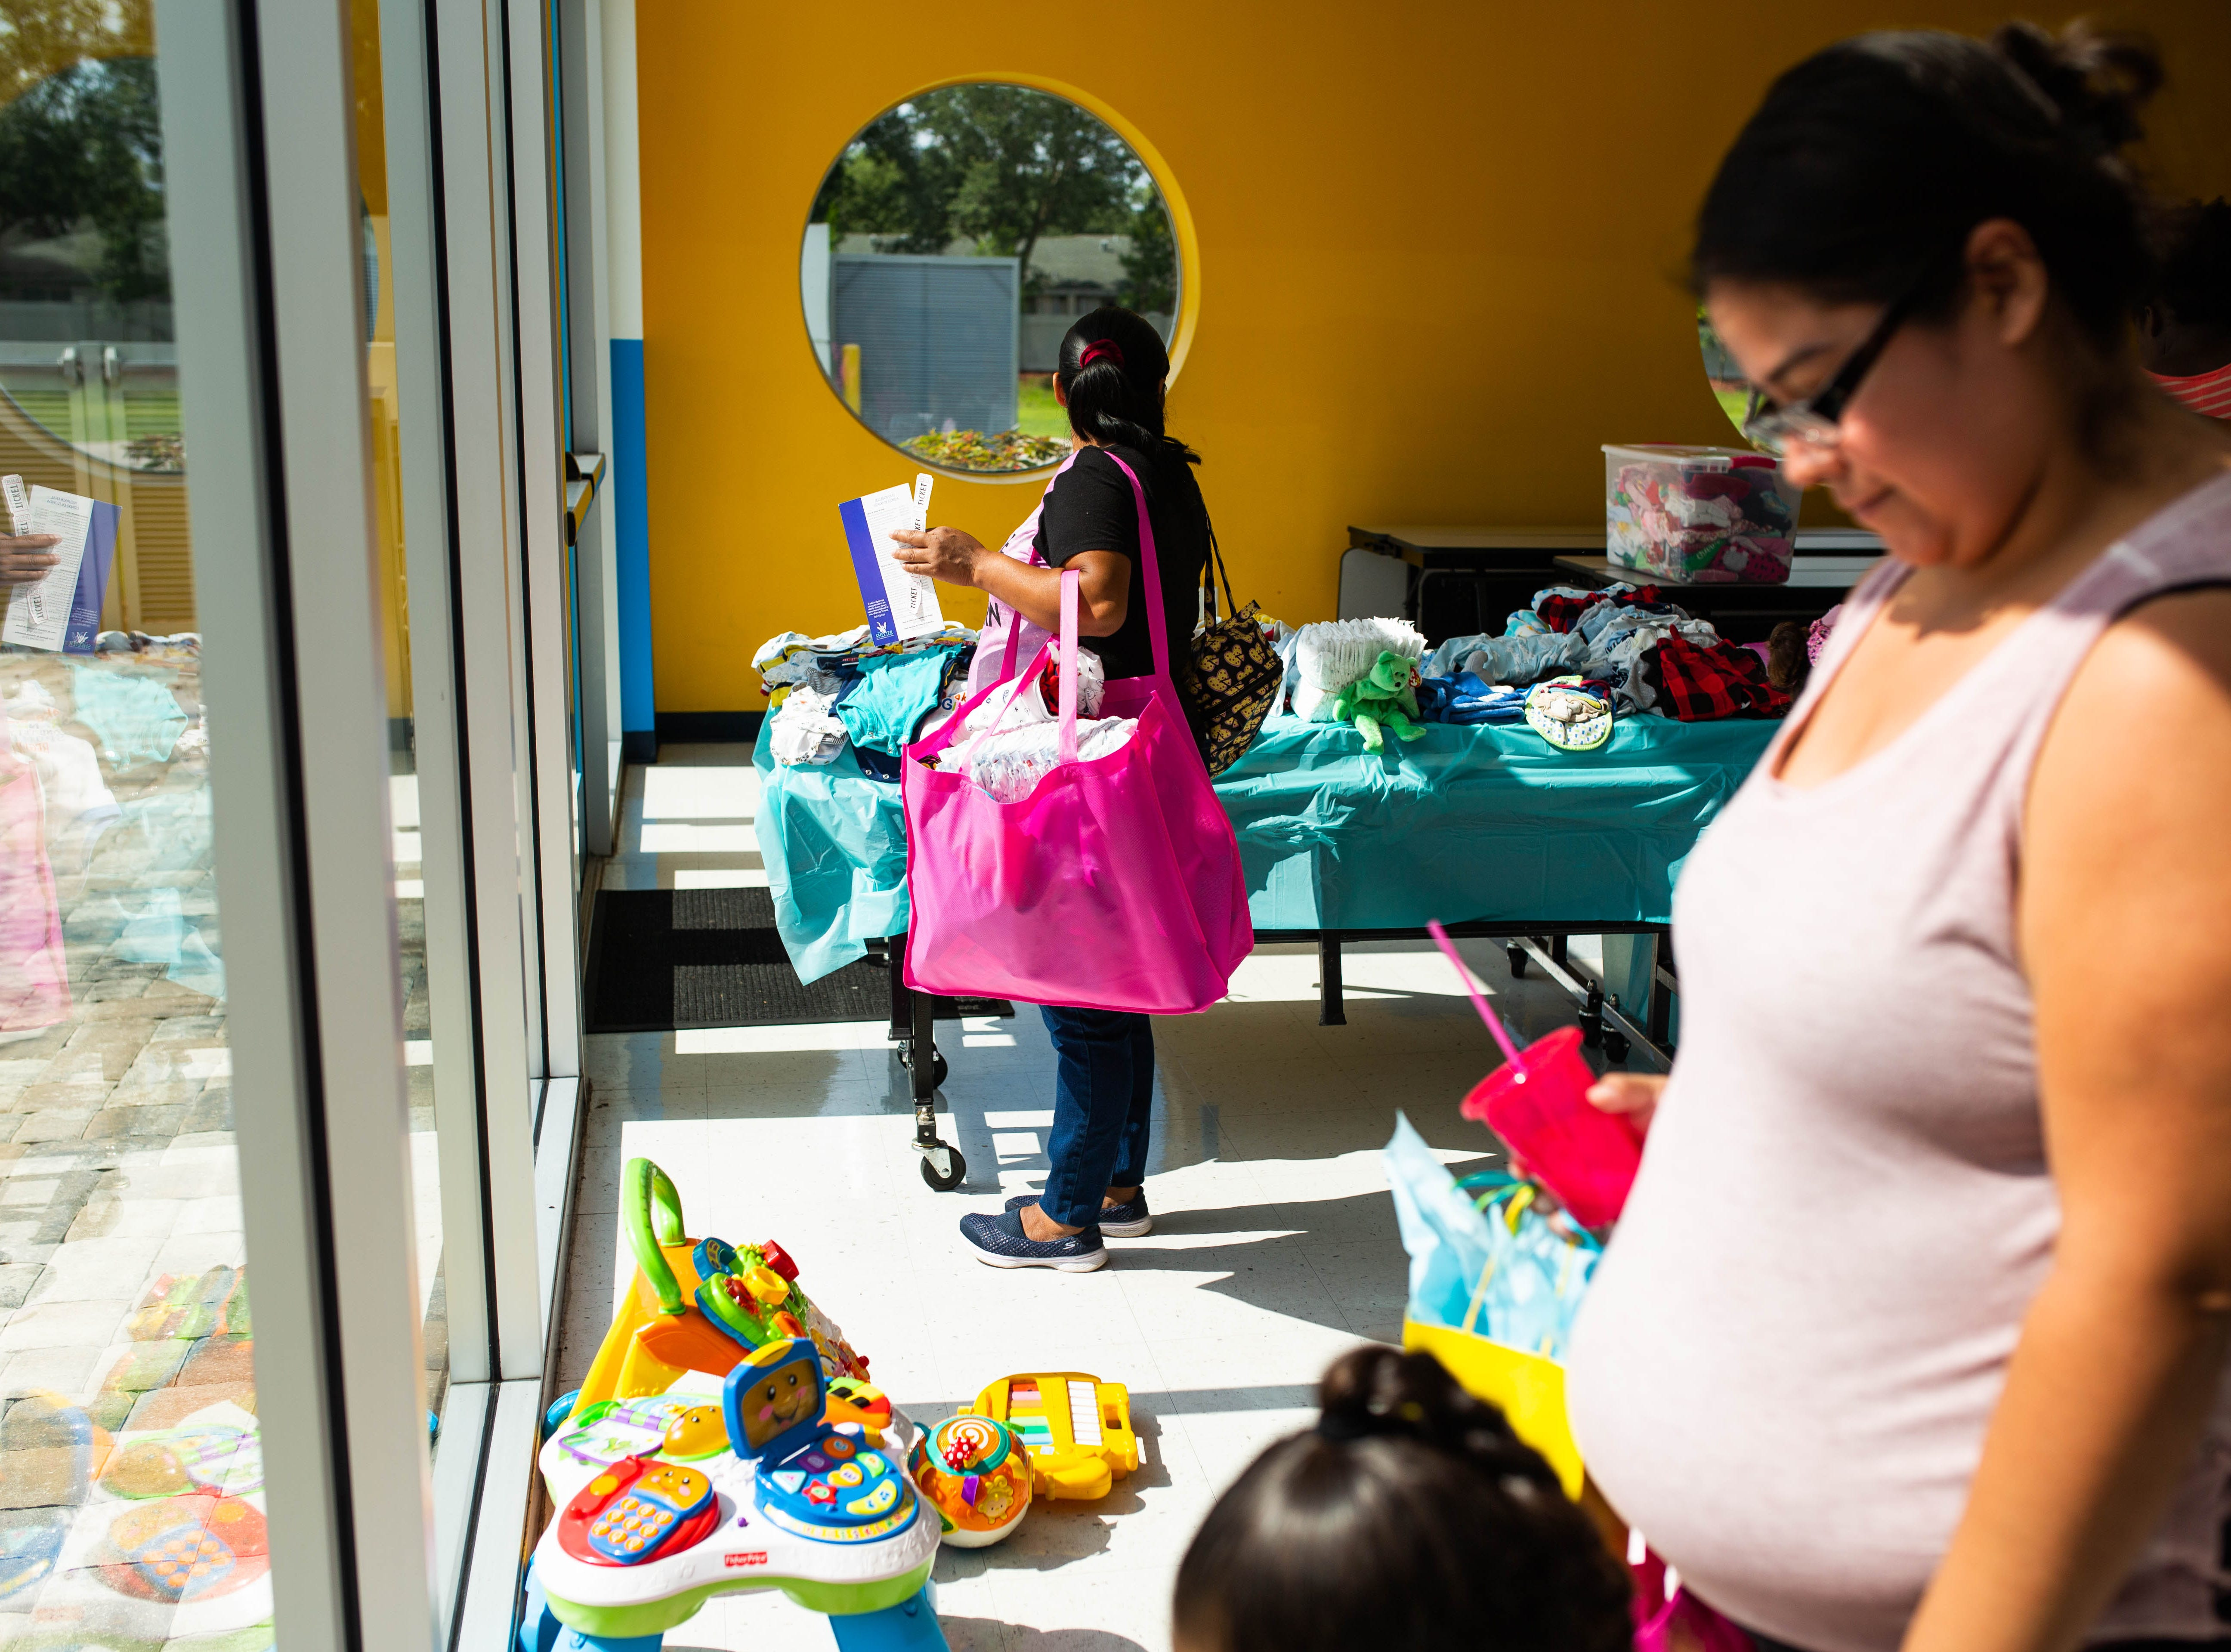 The fourth annual Immokalee Community Baby Shower was held at the Boys & Girls Club in Immokalee on Thursday, May 9, 2019. The event allowed pregnant women in the community access to many resources regarding prenatal and postnatal care, including donated clothing and toys.